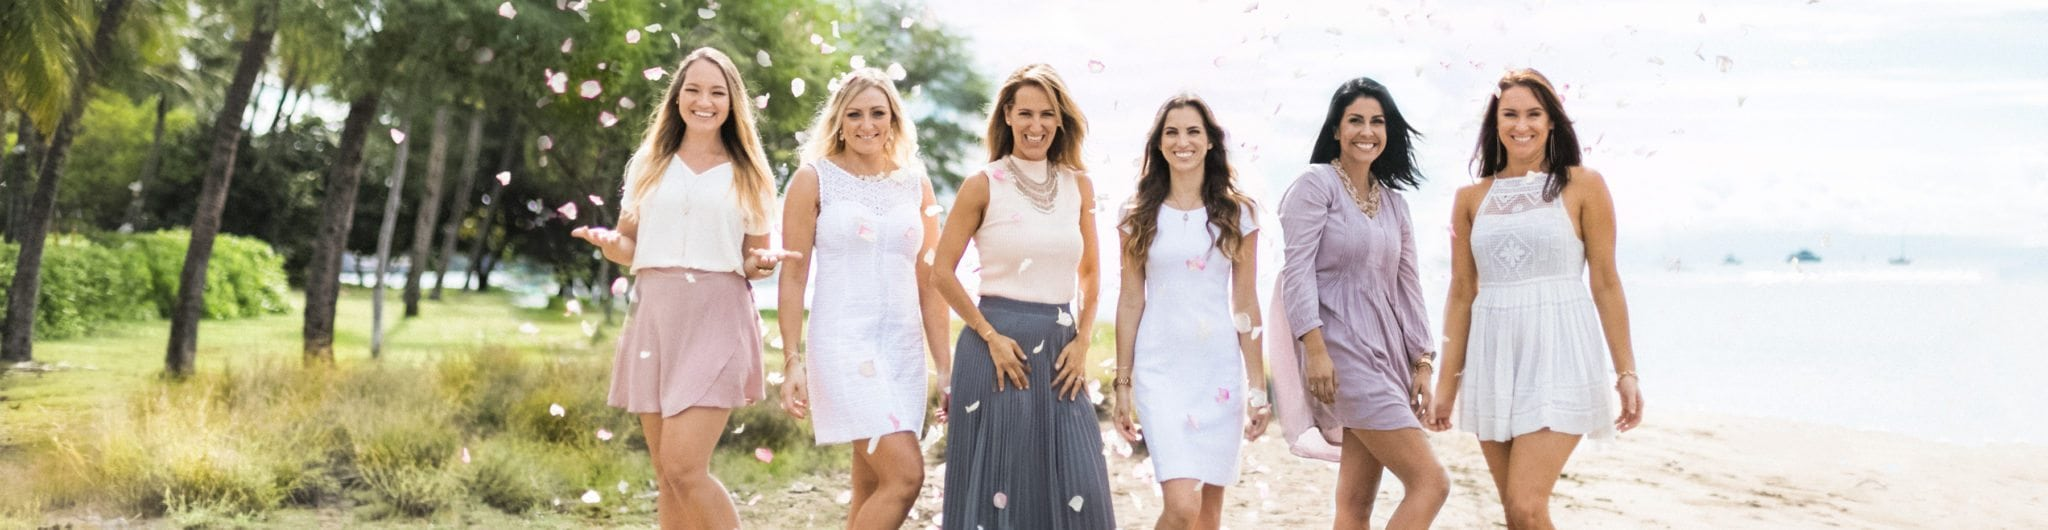 Maui's Angels Wedding Planners Team Photo | Maui Wedding Planners | Maui's Angels